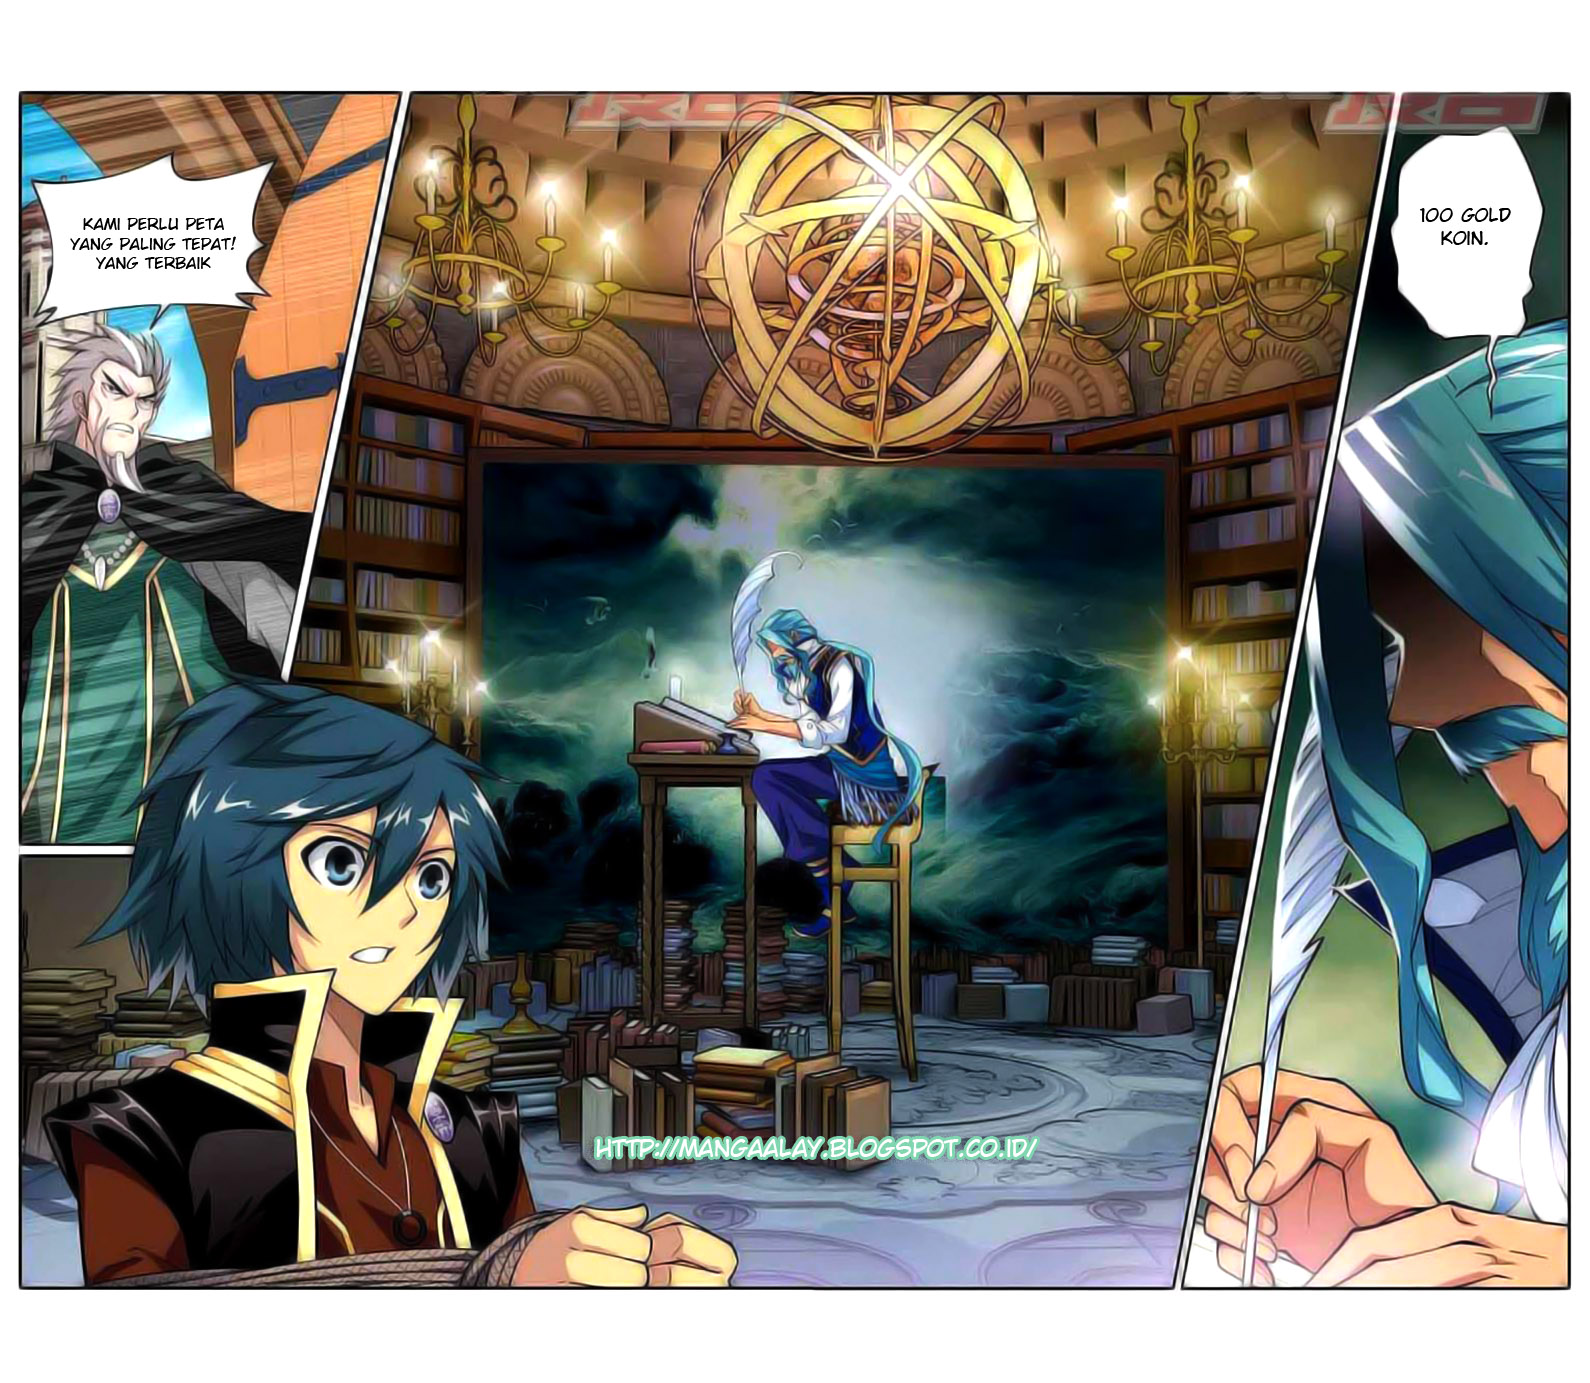 Dilarang COPAS - situs resmi www.mangacanblog.com - Komik battle through heaven 038 - chapter 38 39 Indonesia battle through heaven 038 - chapter 38 Terbaru 17|Baca Manga Komik Indonesia|Mangacan